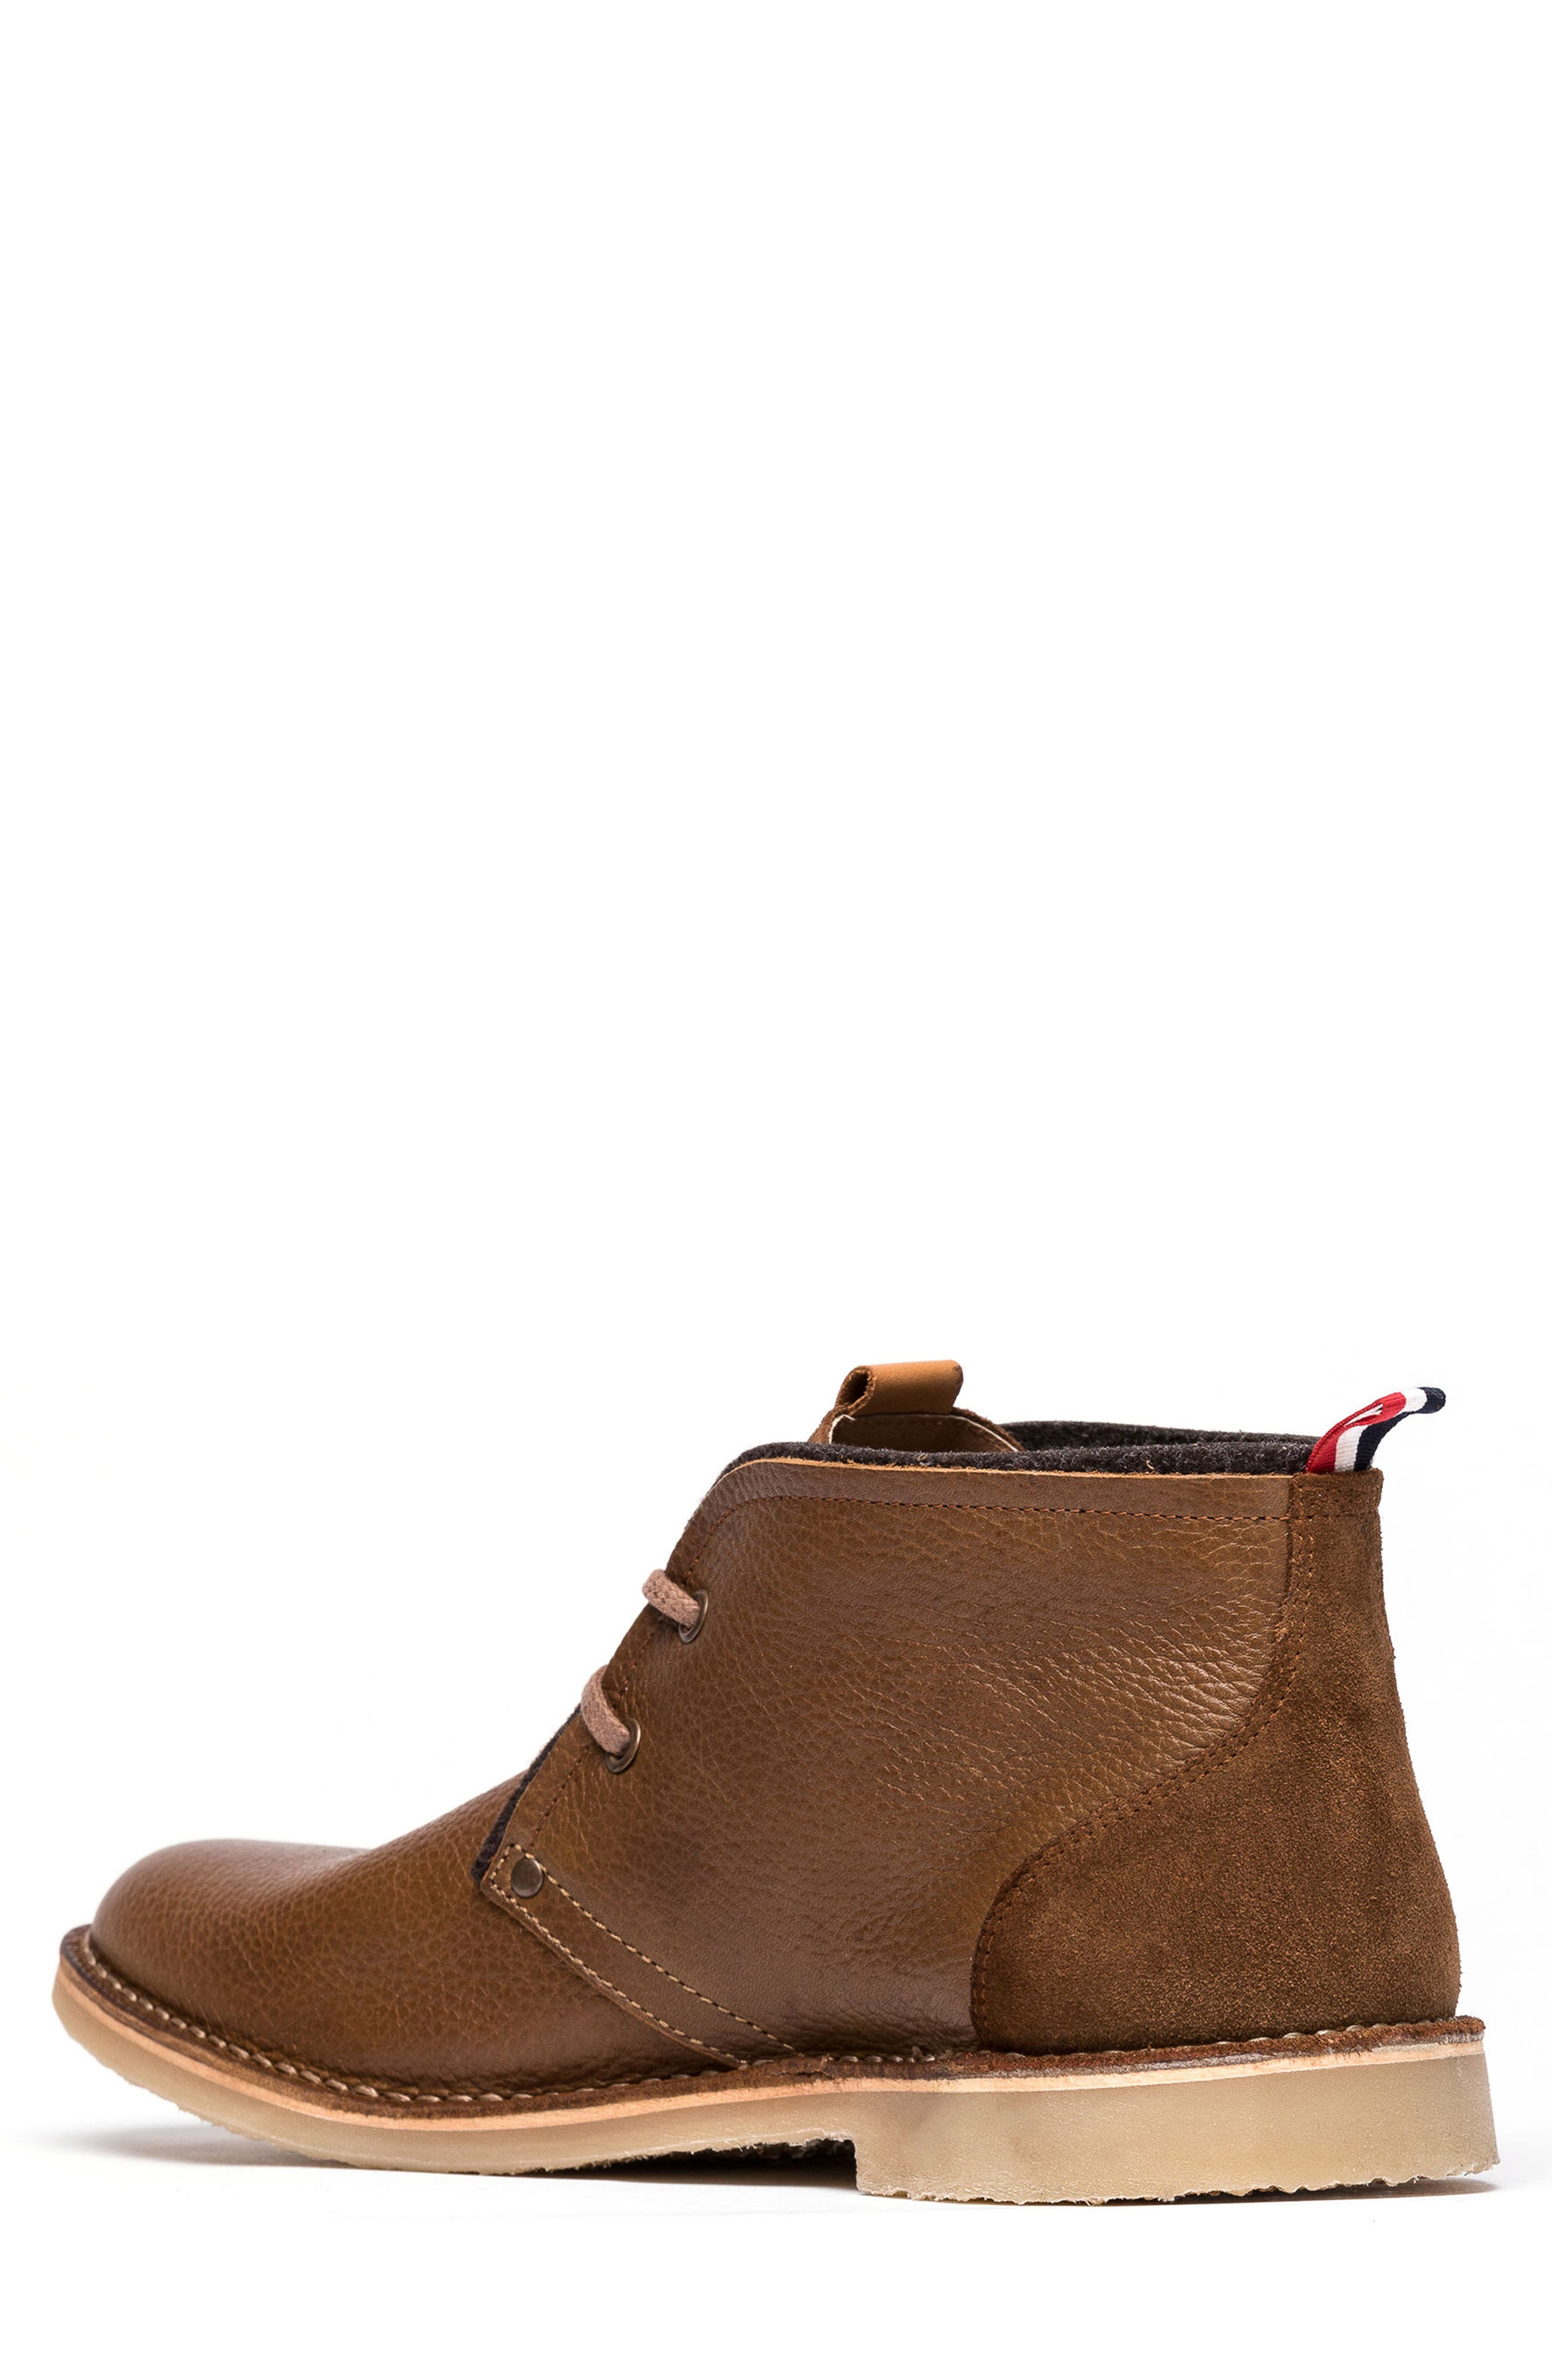 Drury Chukka Boot,                             Alternate thumbnail 2, color,                             218